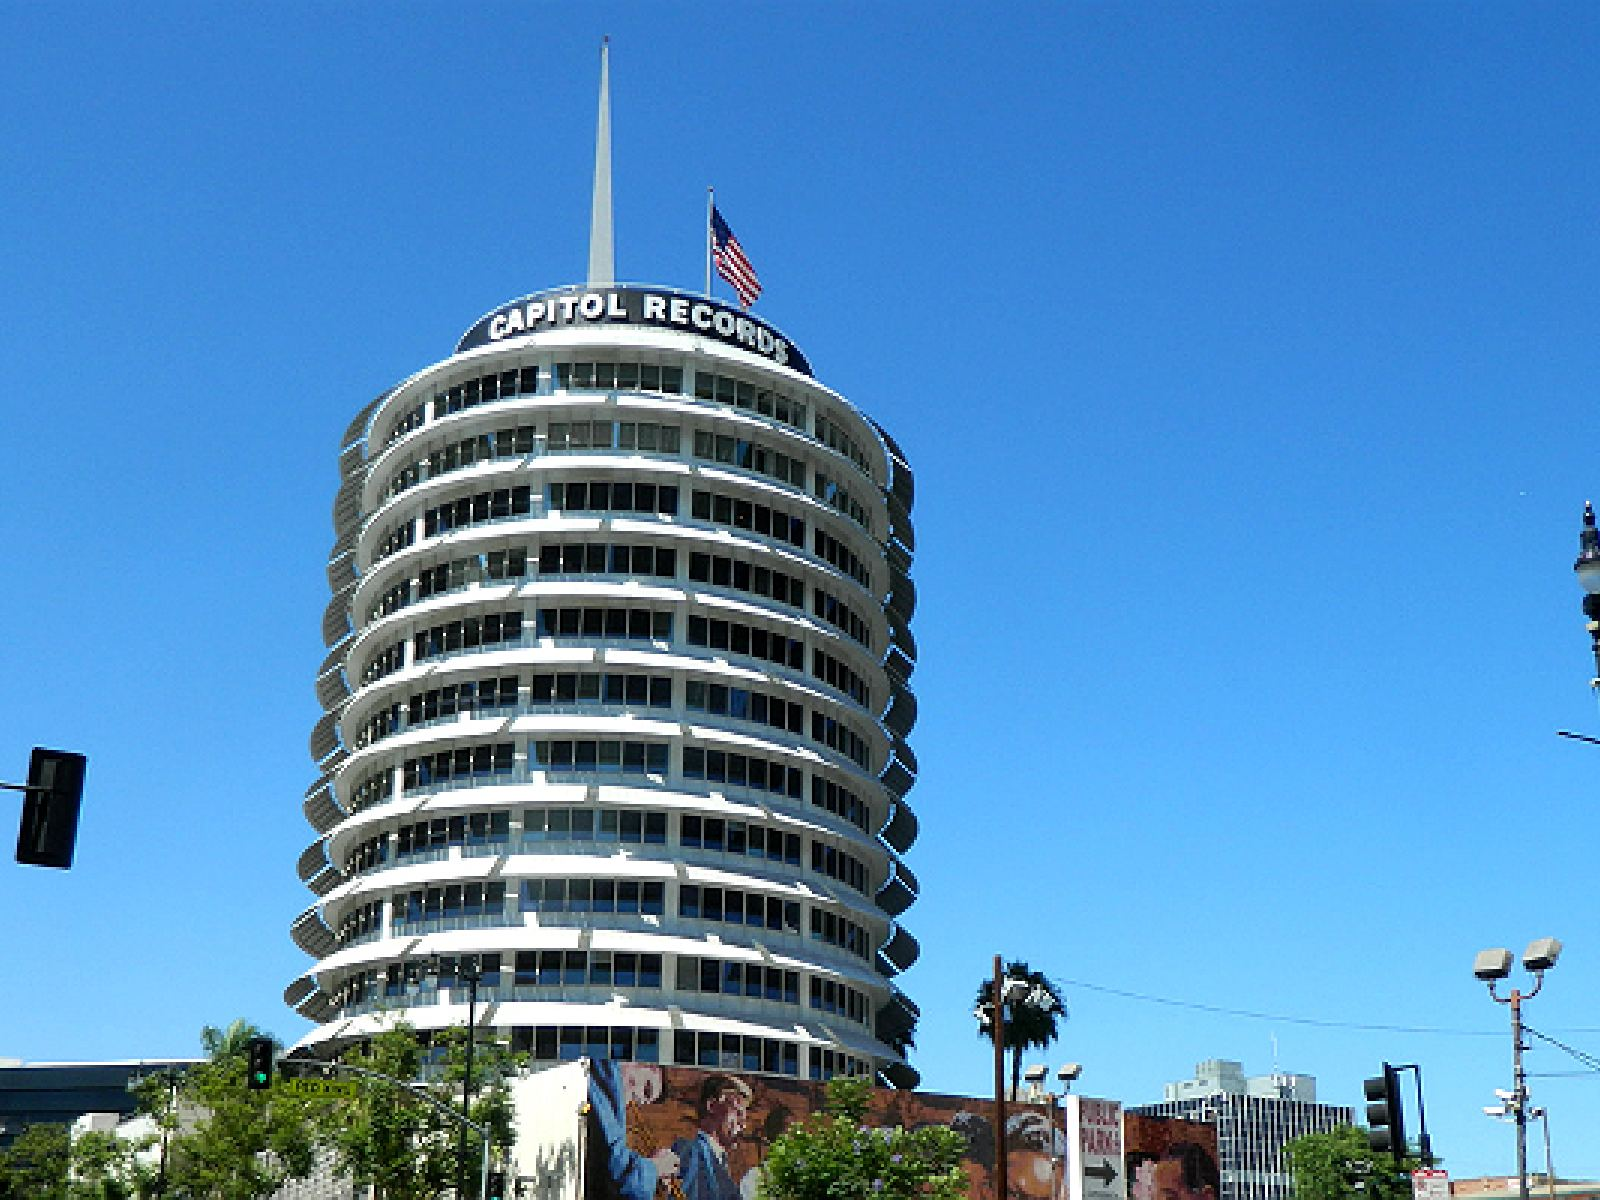 The Capitol Records Building The Story Of An L A Icon Discover